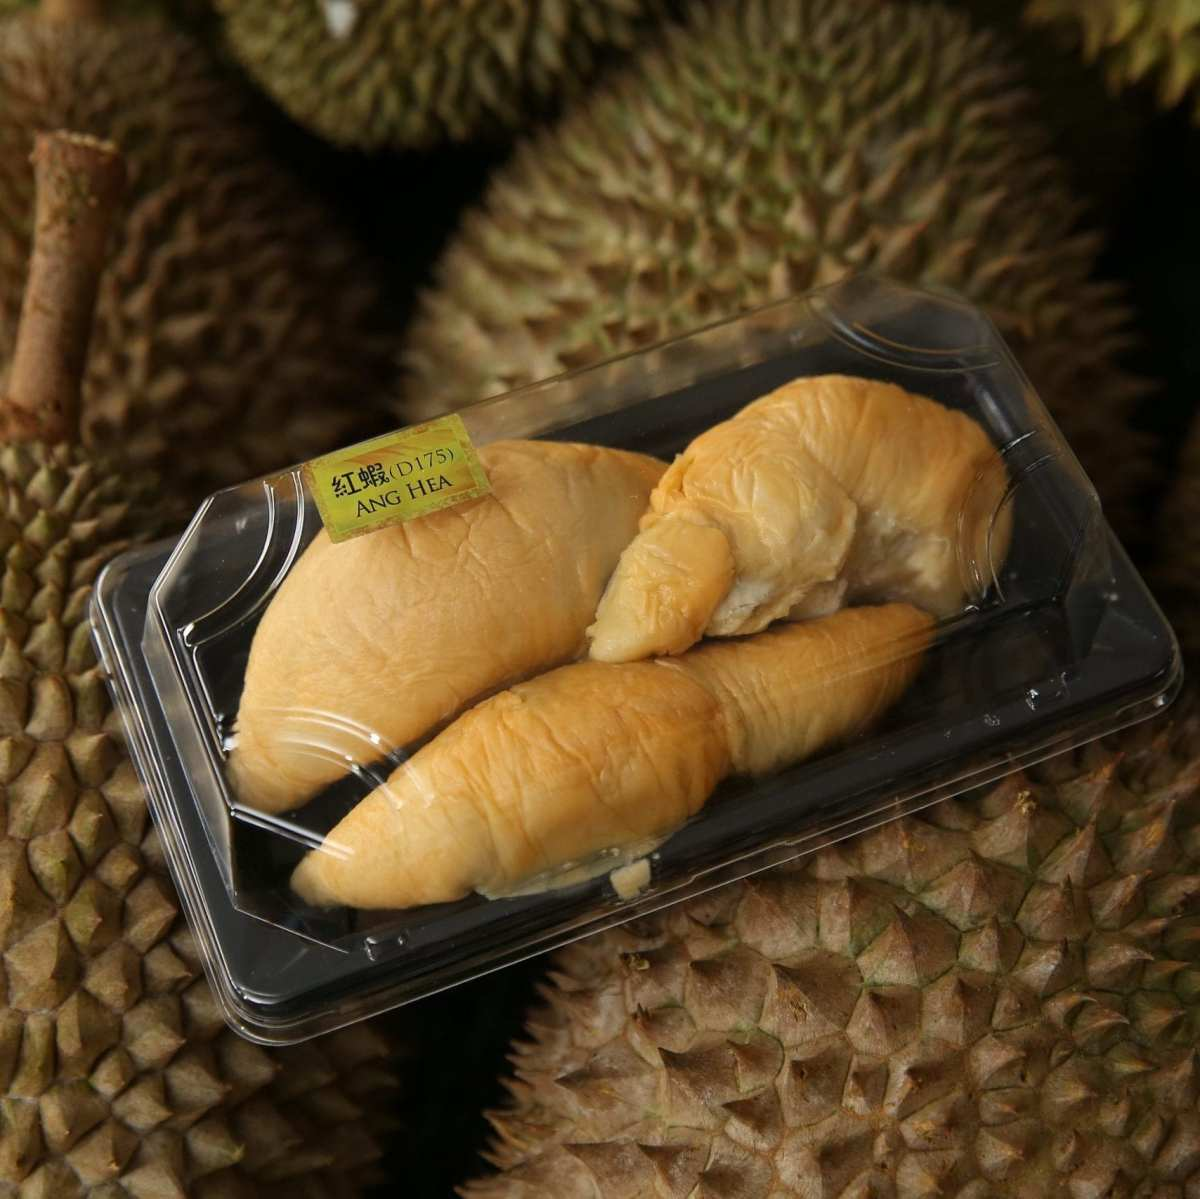 Red Prawn D175   Musang King   D24   Fresh Durian   Durian Ice Cream   Durian Mochi   Durian Crepe Cake   Durian Cheesecake   Tip Top Durian Delivery   Malaysia Top Fresh Durian Online Delivery